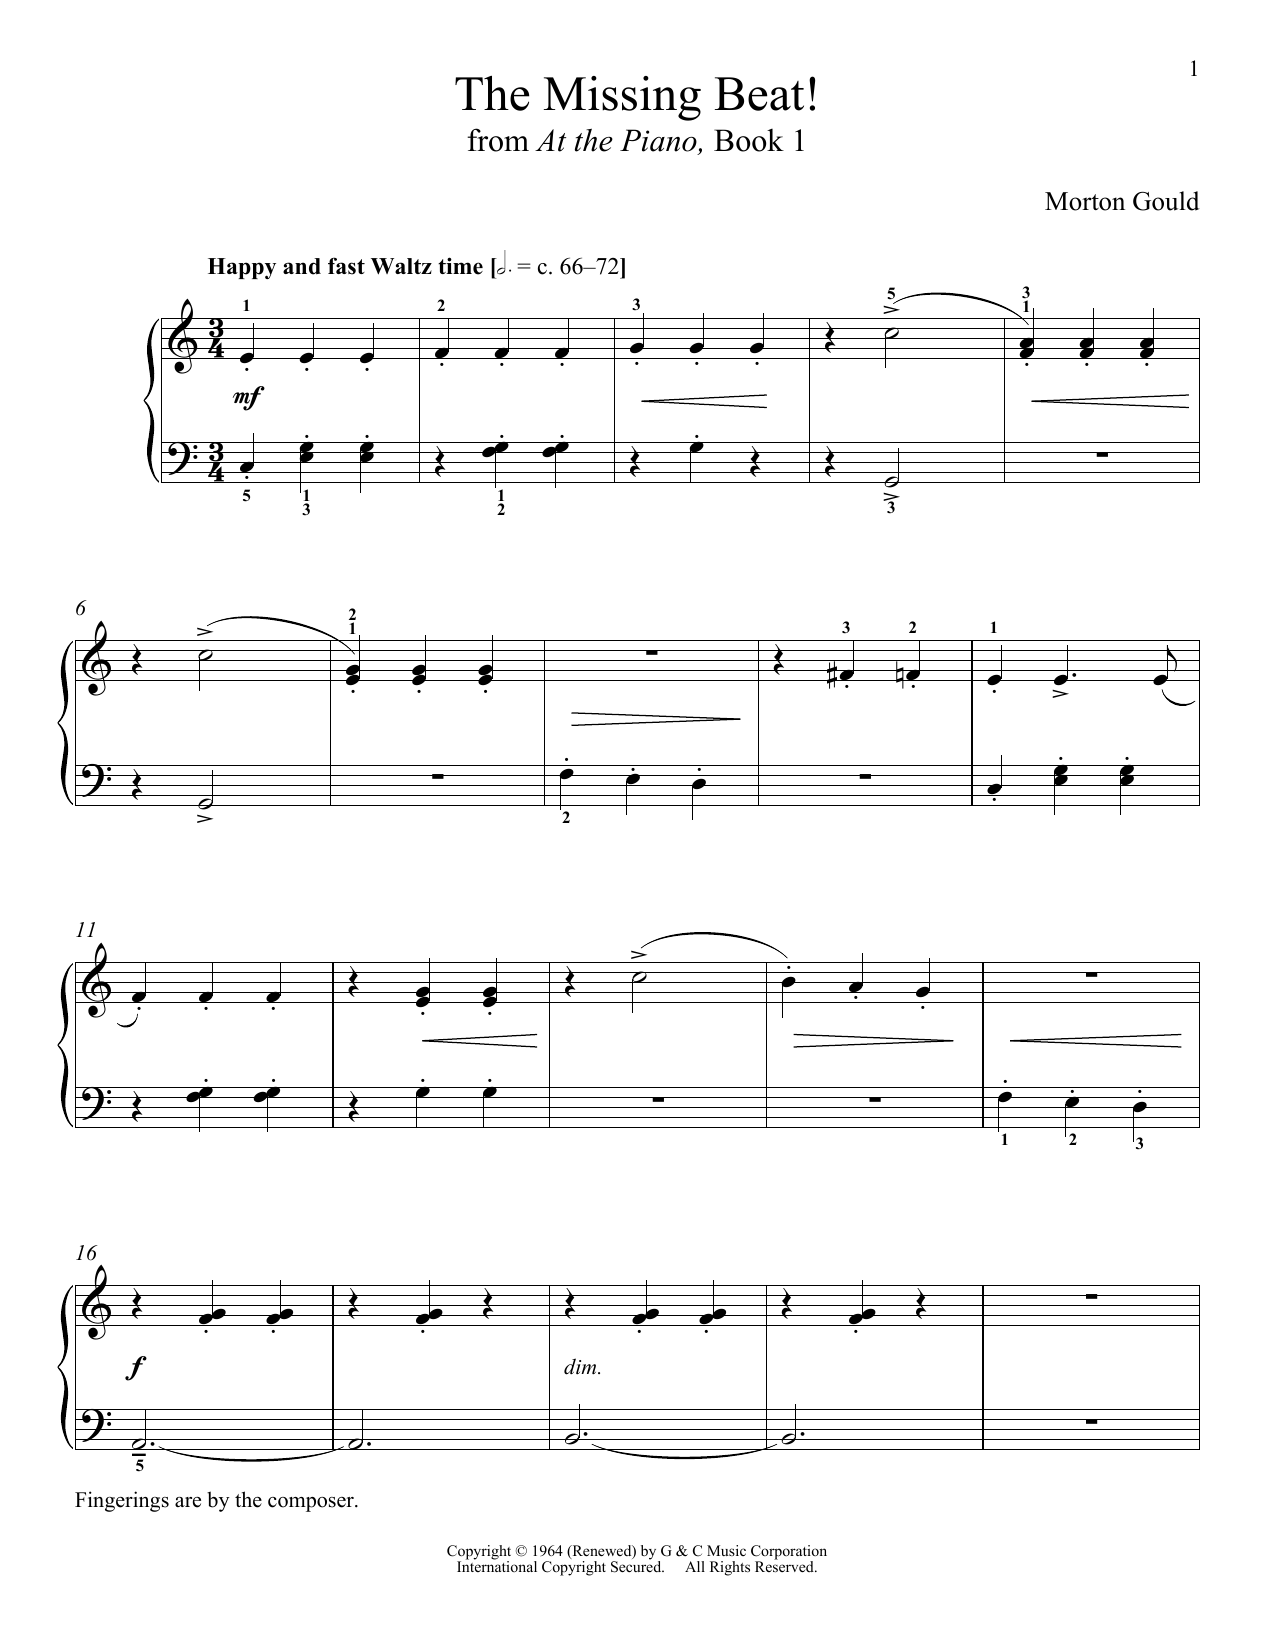 Download Morton Gould 'The Missing Beat' Digital Sheet Music Notes & Chords and start playing in minutes